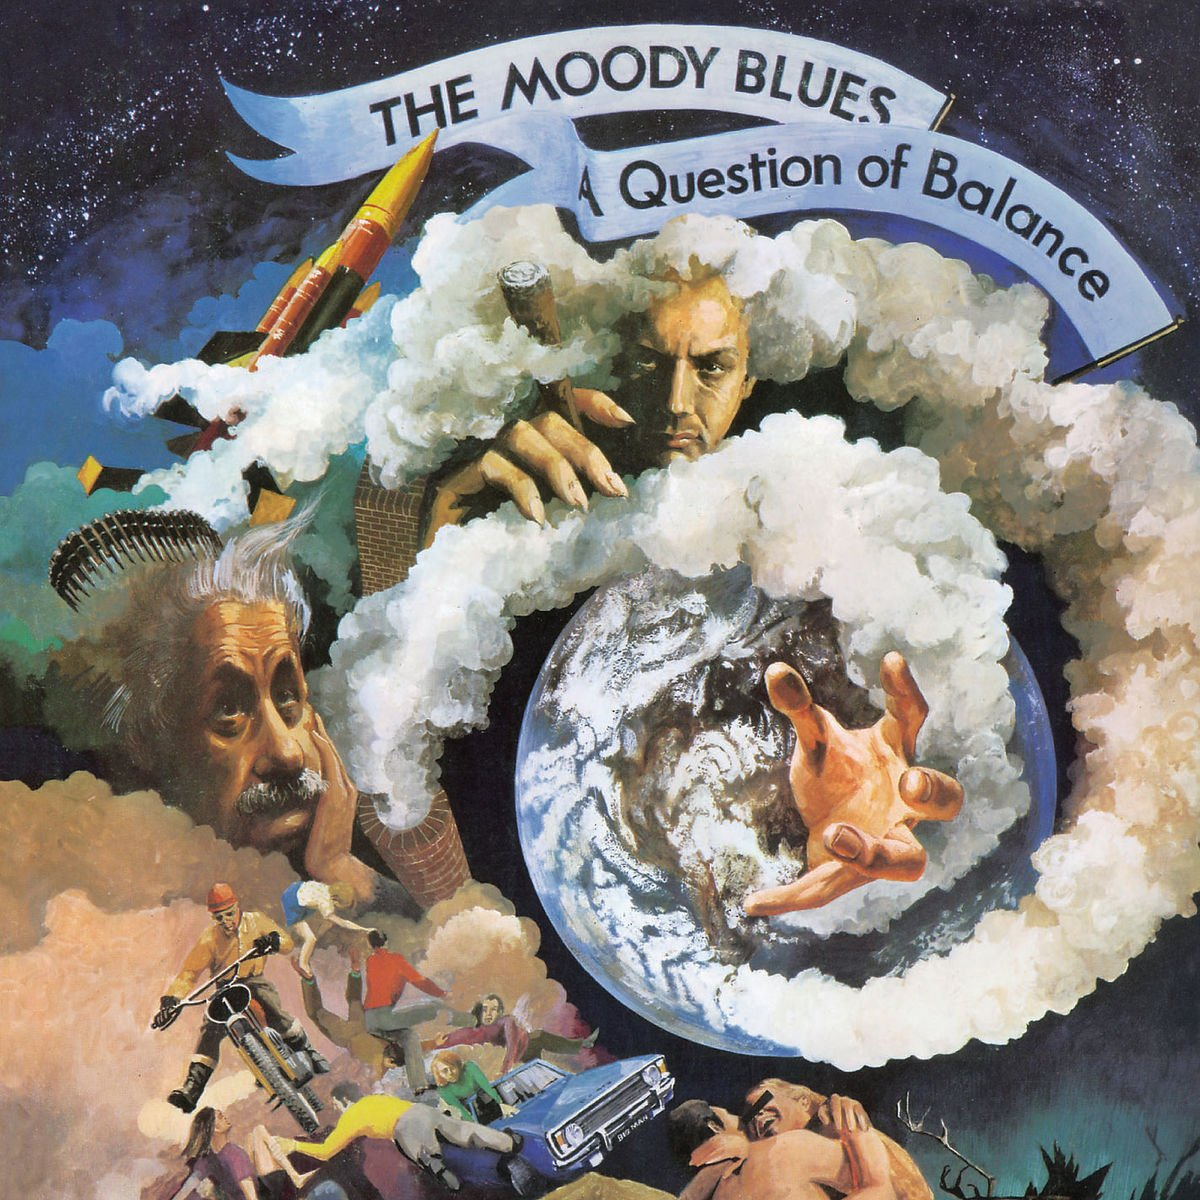 CD : The Moody Blues - A Question Of Balance [Bonus Tracks] [Expanded Edition] [Remastered] (Bonus Tracks, Expanded Version, Remastered, Reissue)